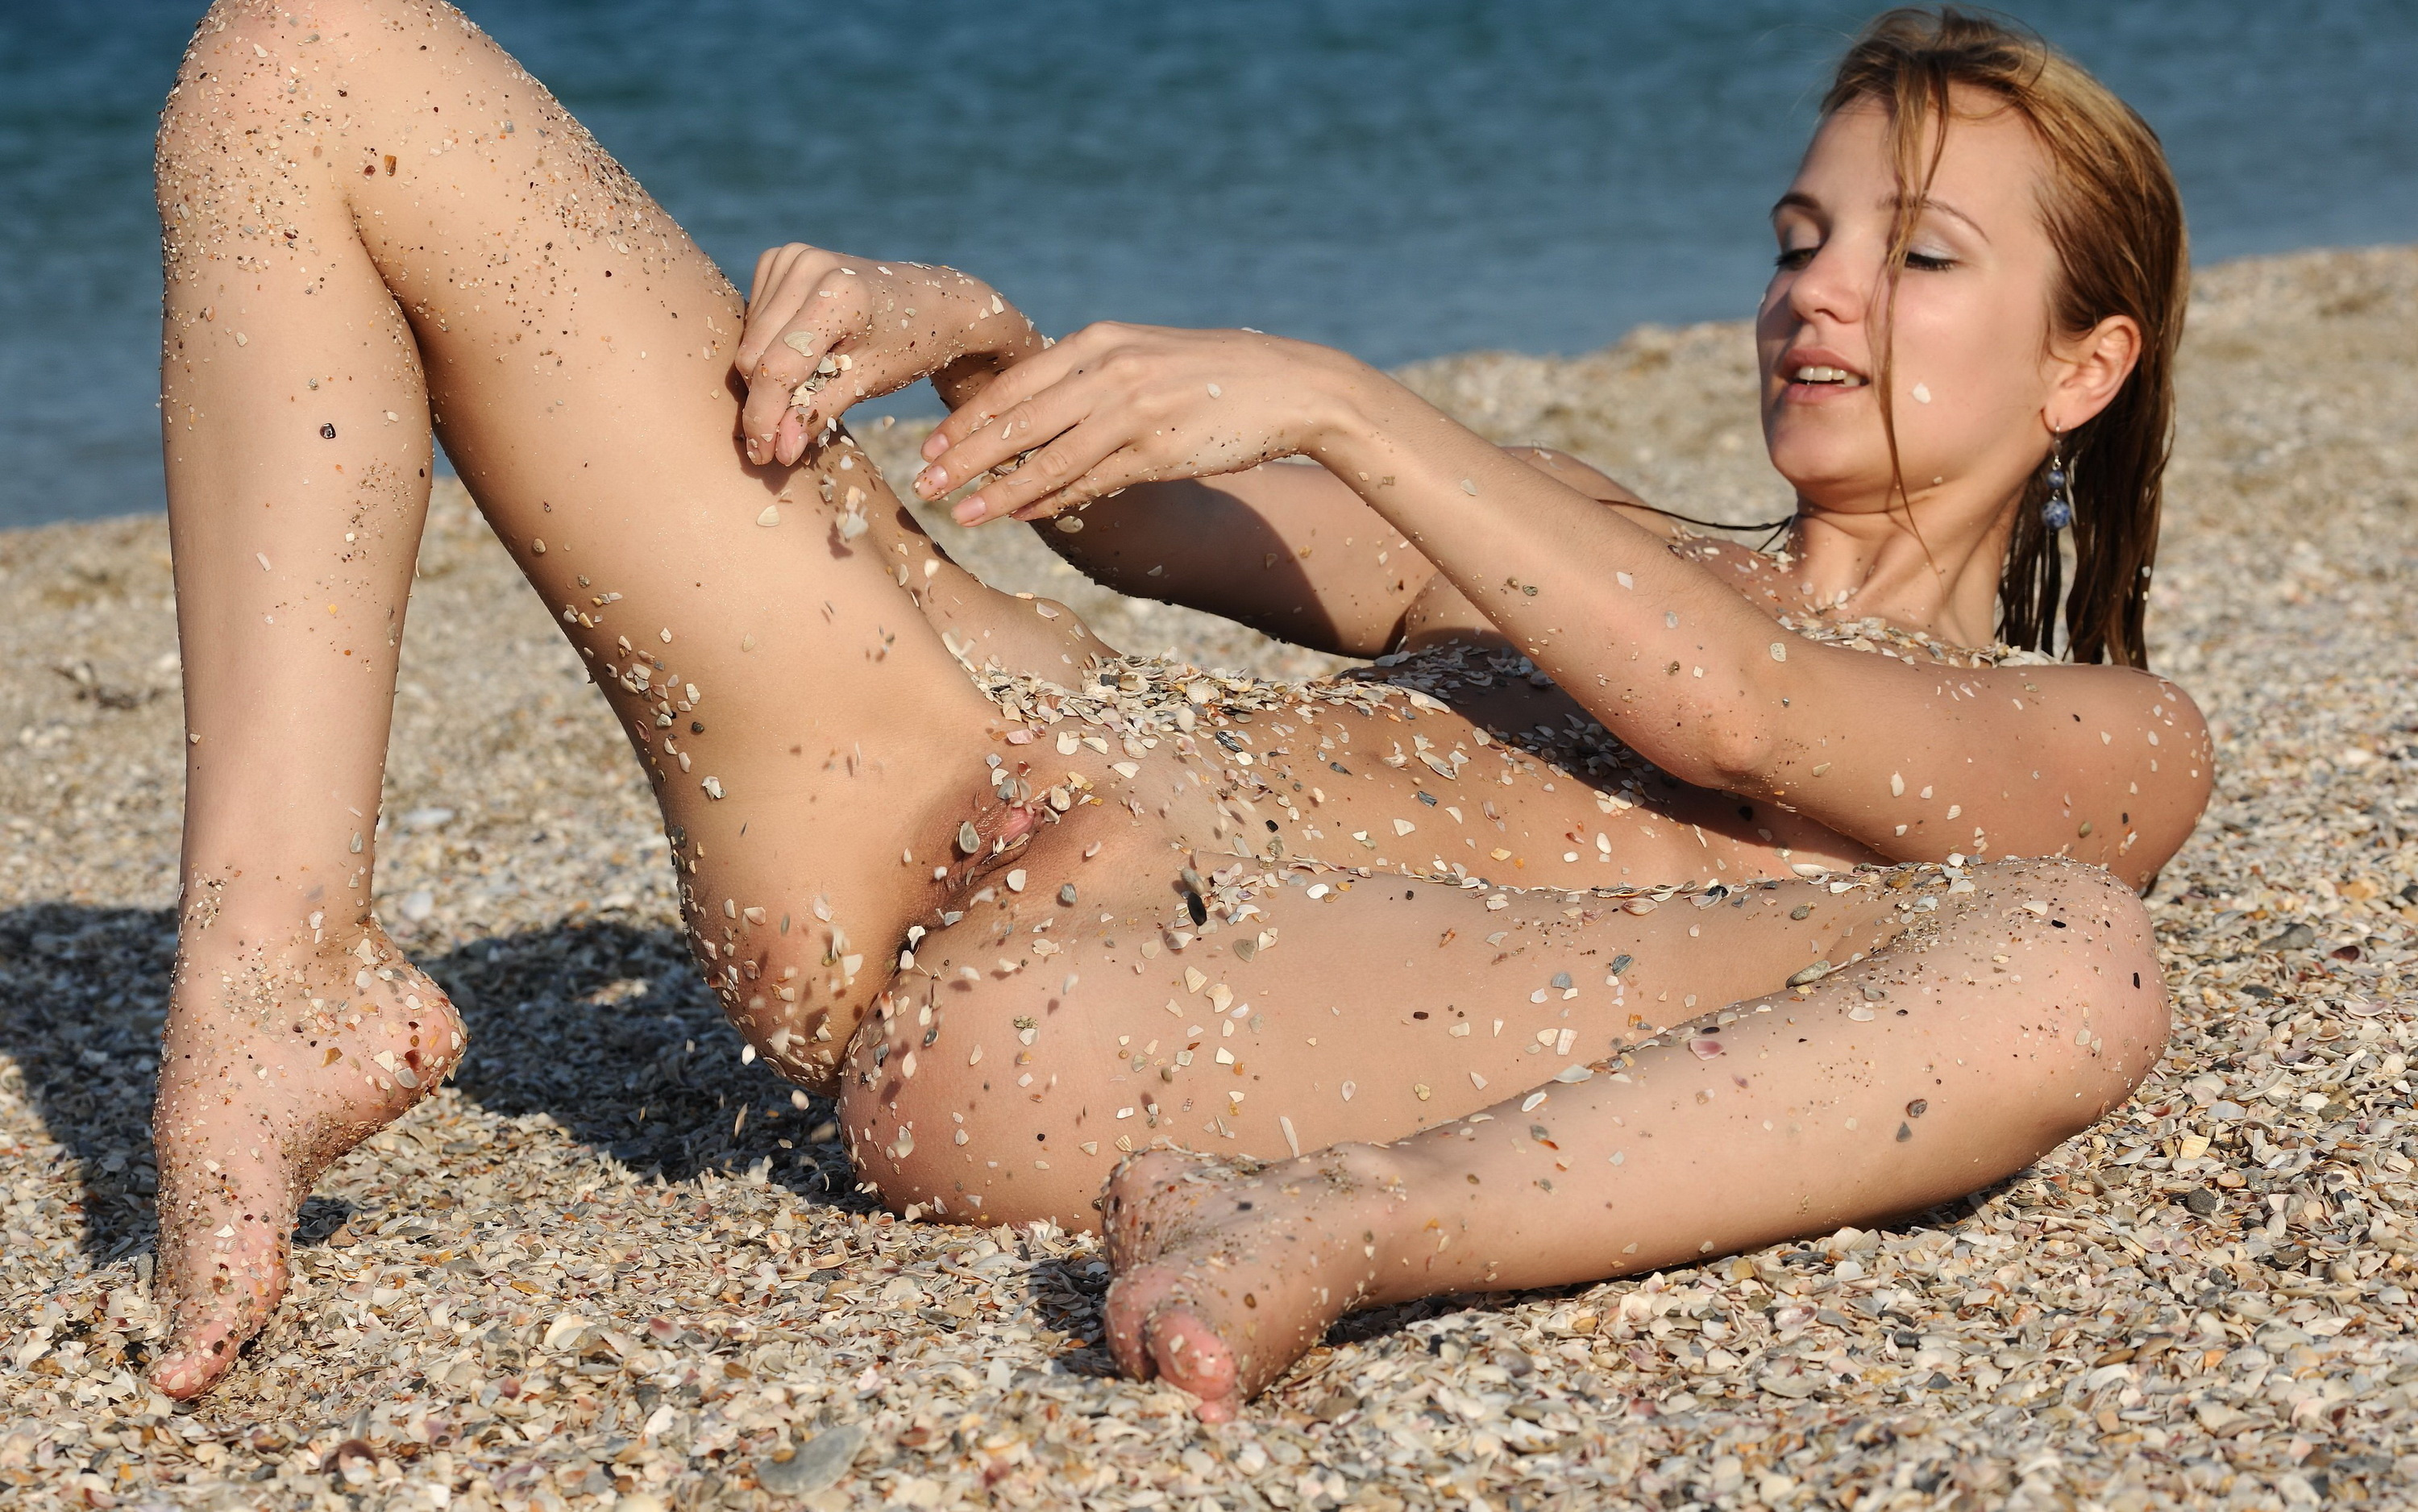 wallpaper karo e, nude, beach, wet, pussy desktop wallpaper - girls